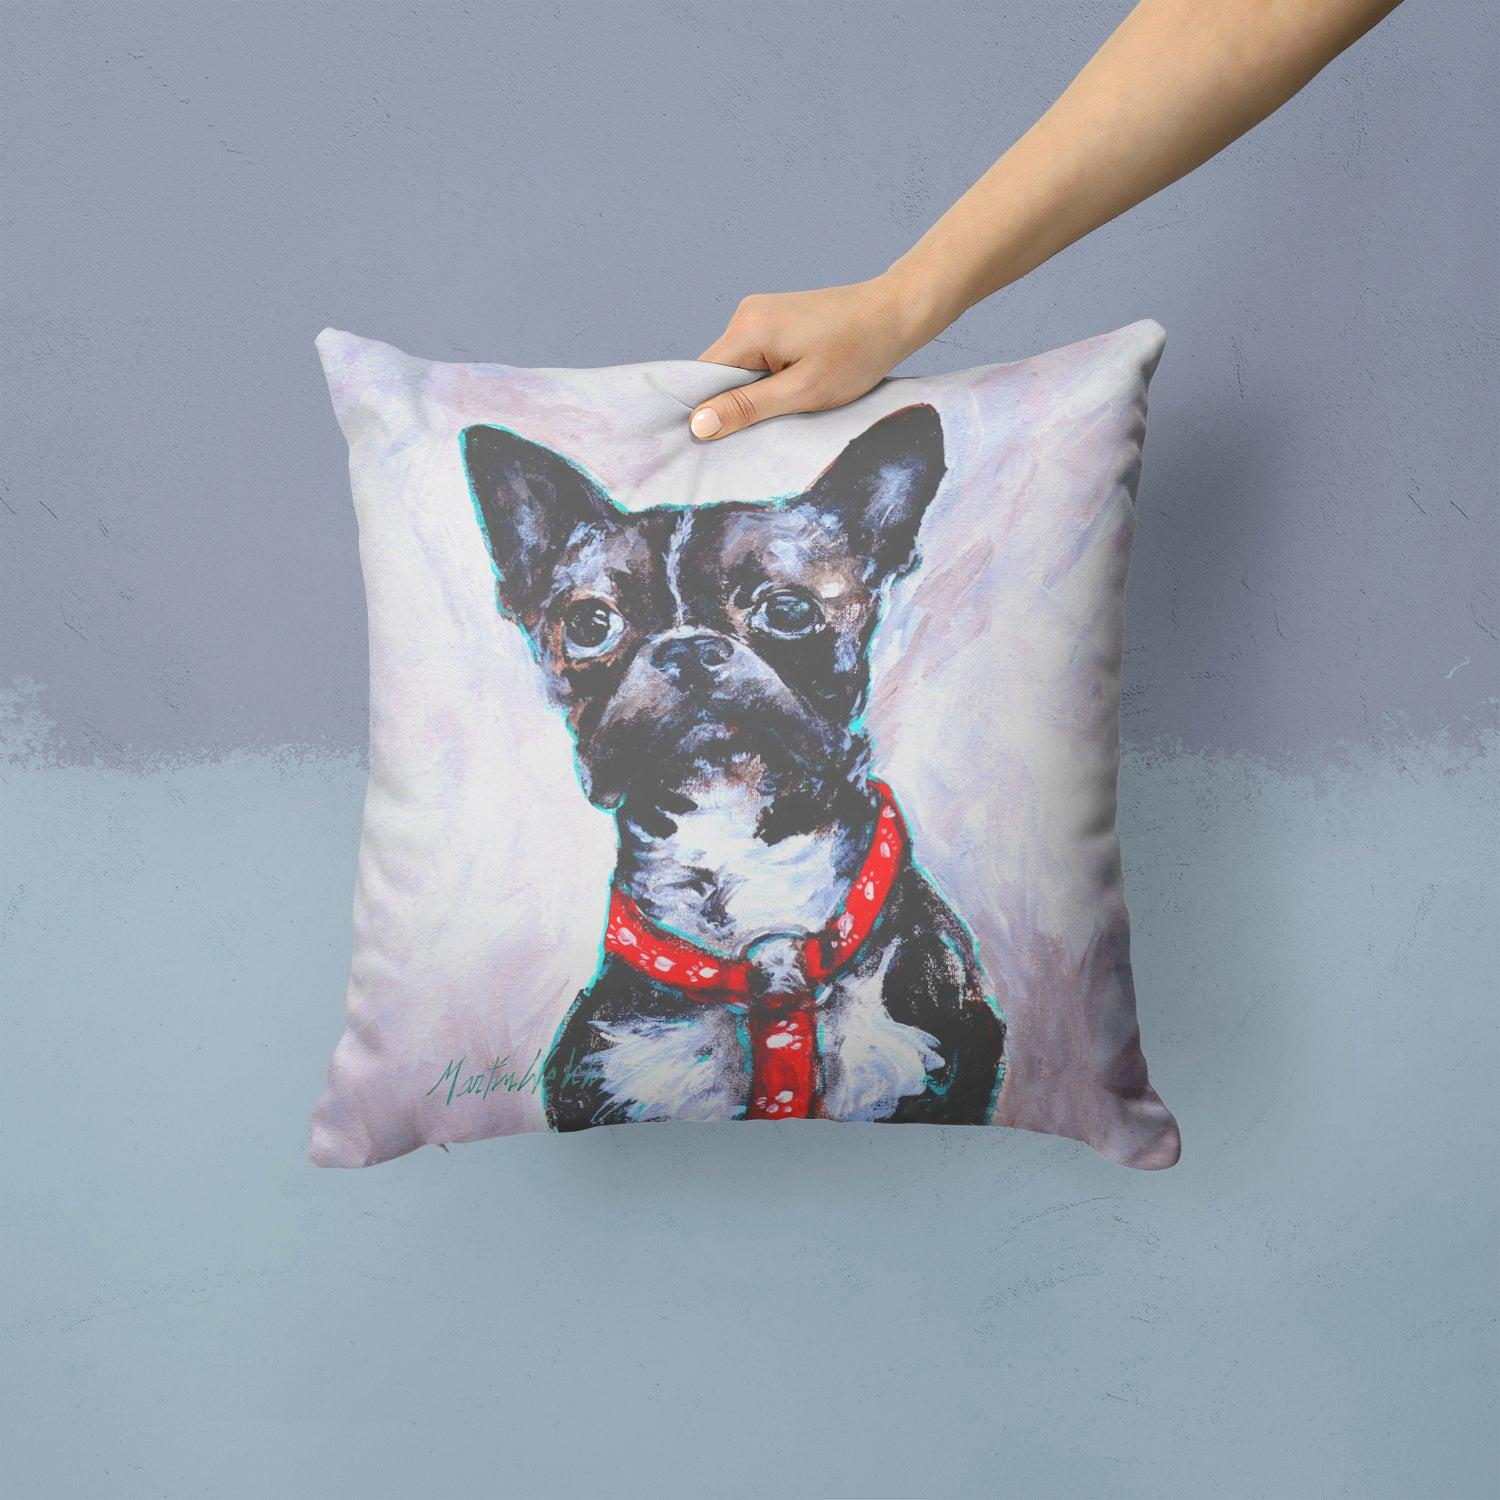 Boston Terrier Brindle Ziggy Fabric Decorative Pillow MW1312PW1414 by Caroline's Treasures